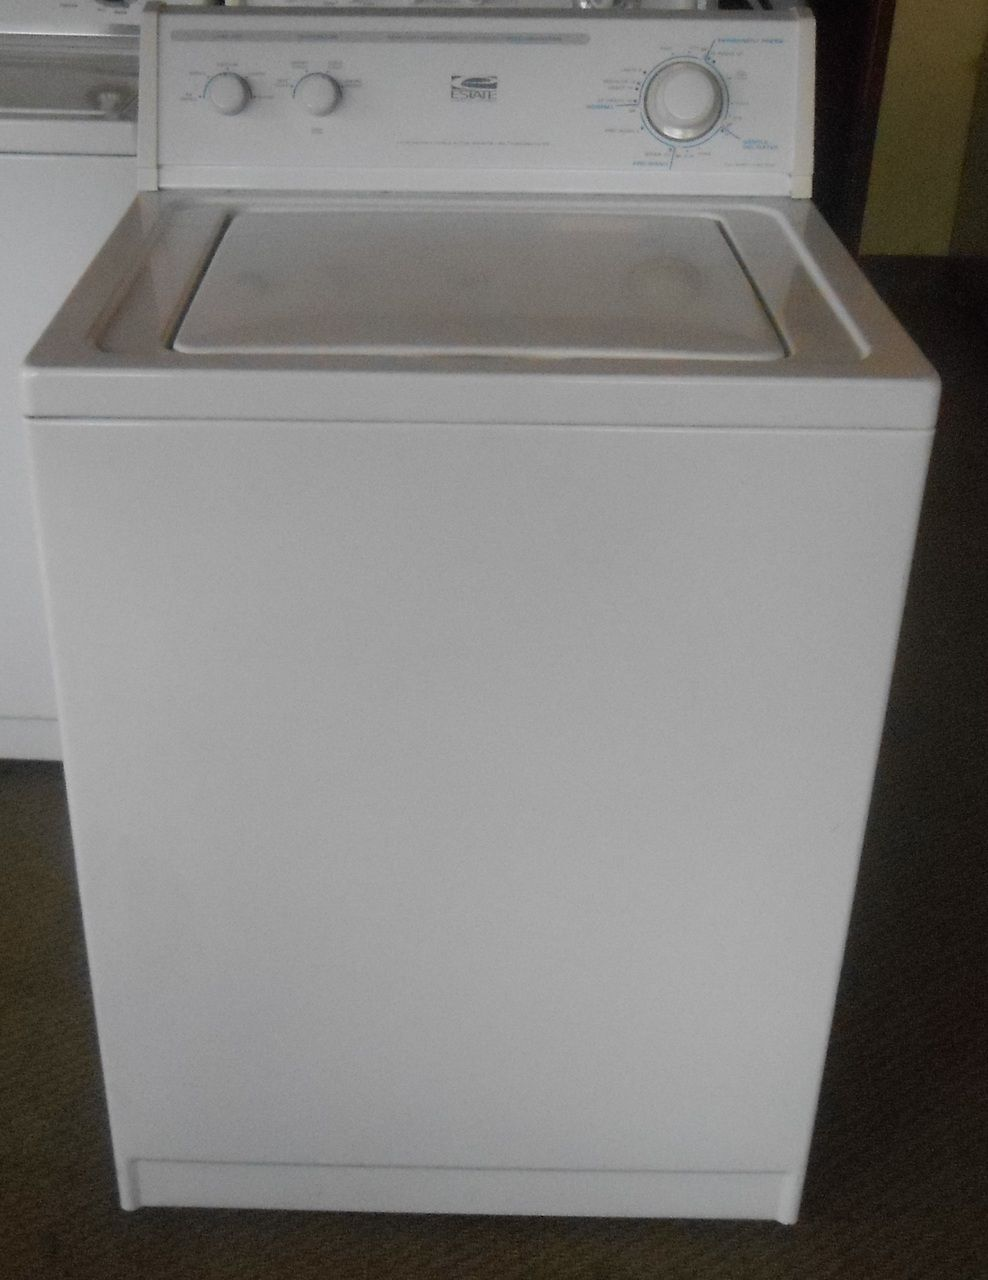 Liance City Whirlpool Estate Direct Drive Top Load Washer Heavy Duty Super Capacity 8 Cycle